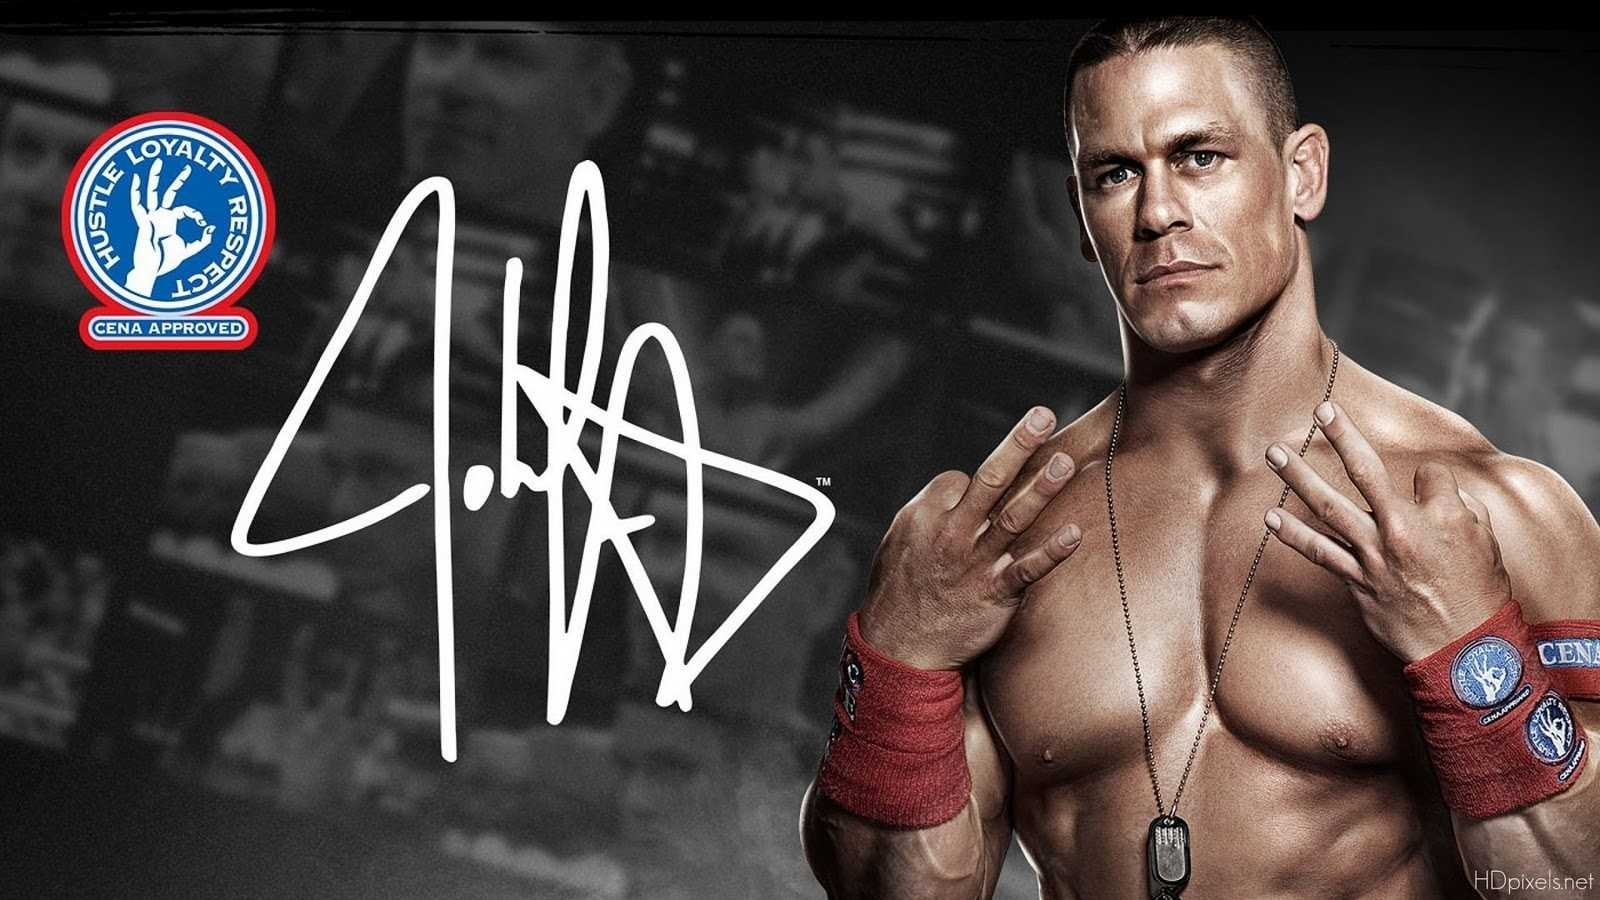 wwe john cena new pictures 4k desktop wallpaper of computer high